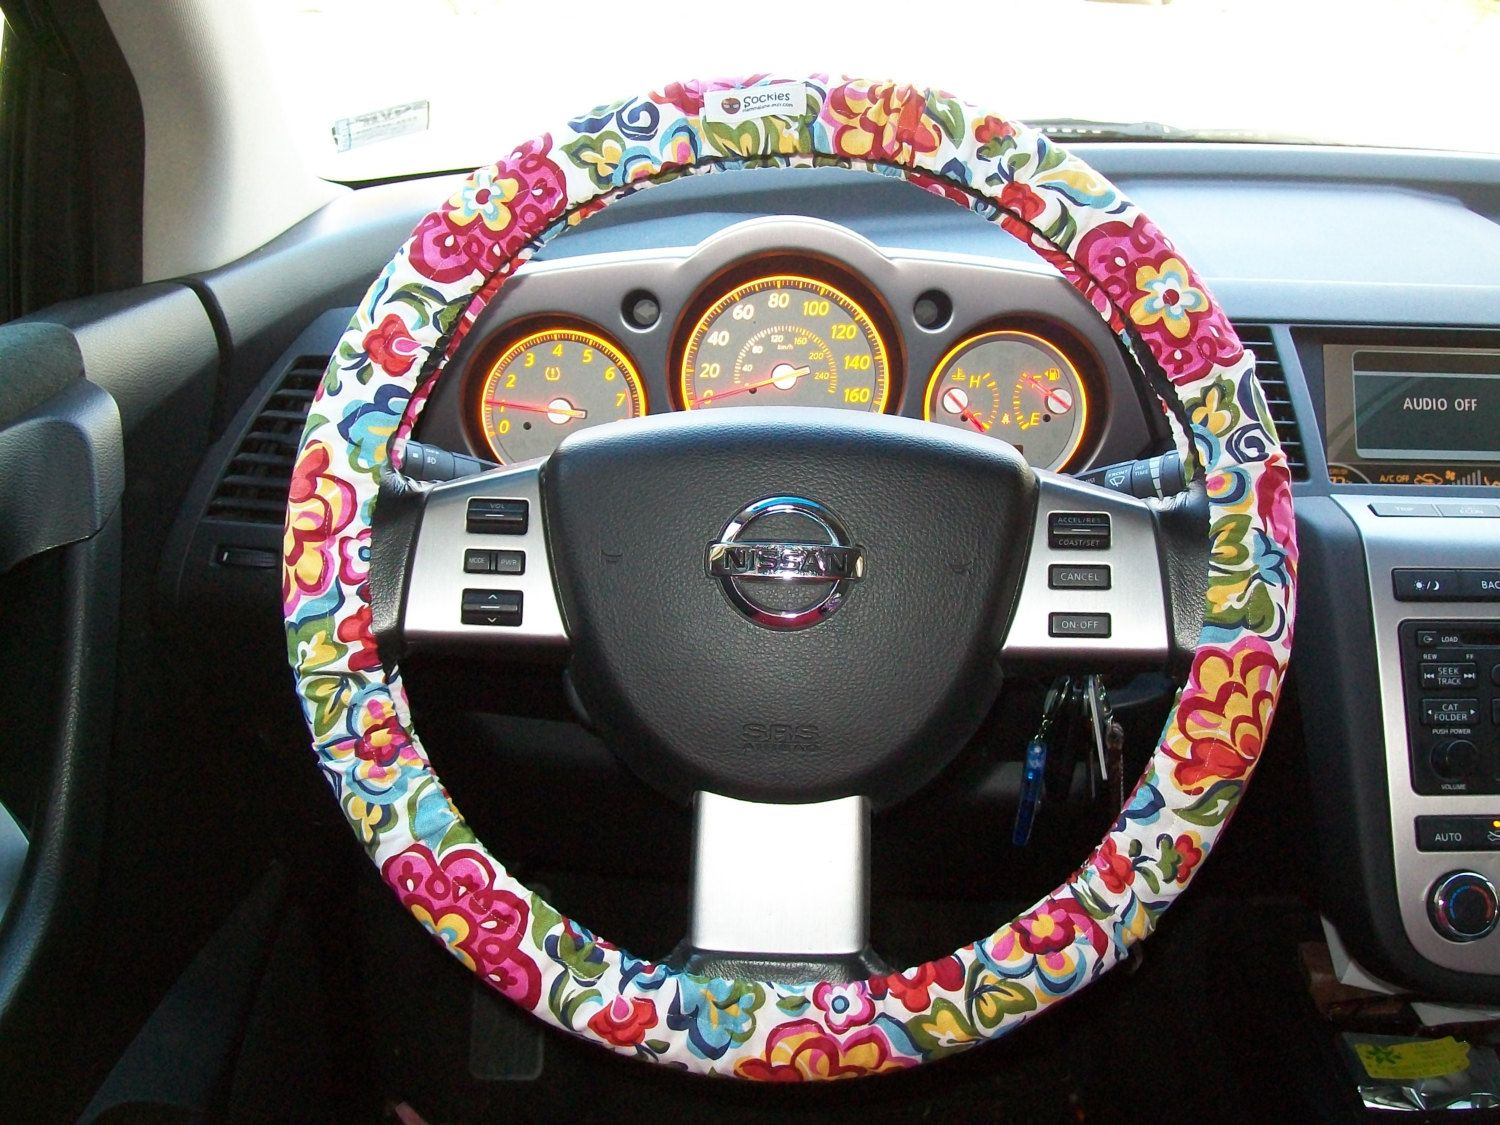 vera bradley designer inspired steering wheel cover by mammajane on etsy for the car. Black Bedroom Furniture Sets. Home Design Ideas